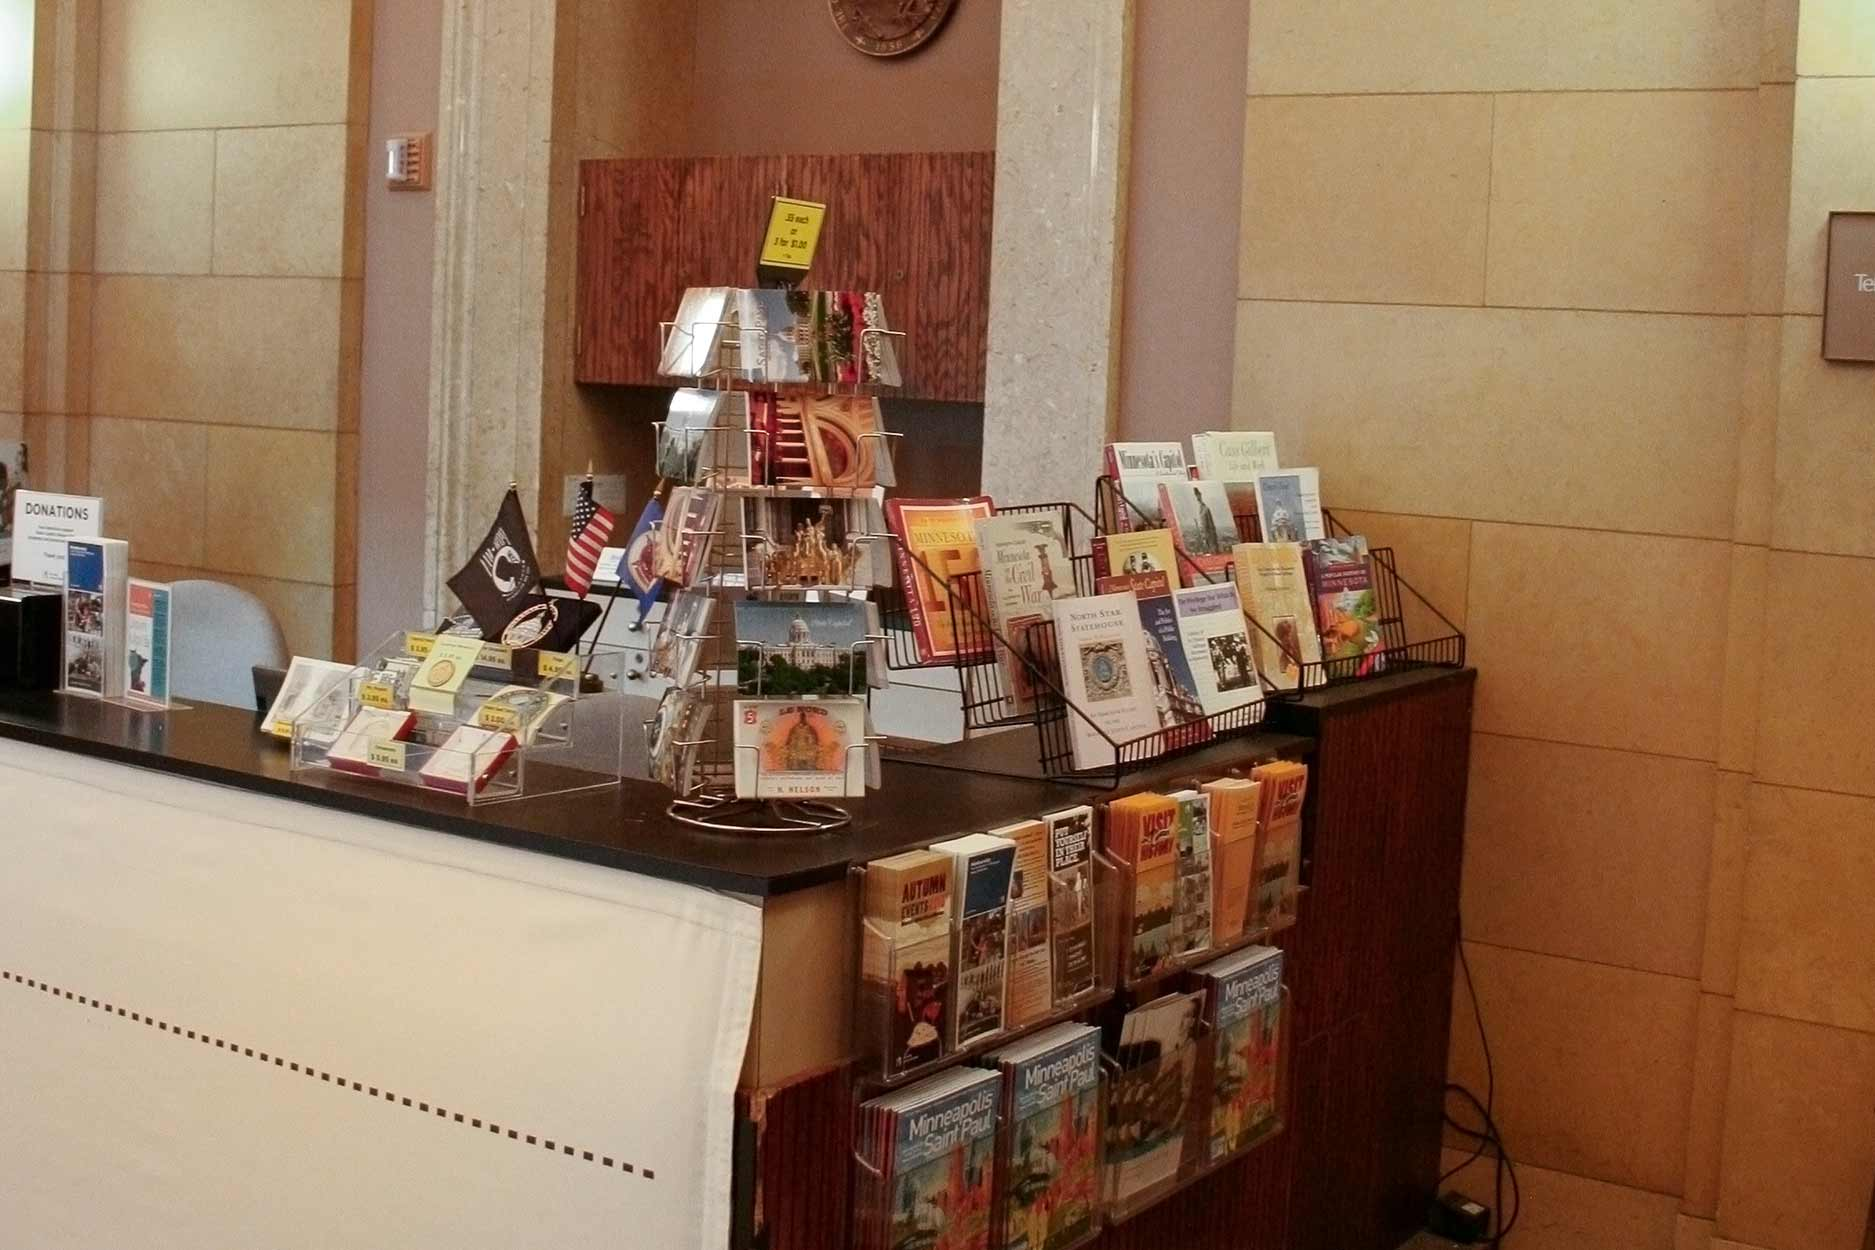 The State Capitol front desk, with postcards and brochures